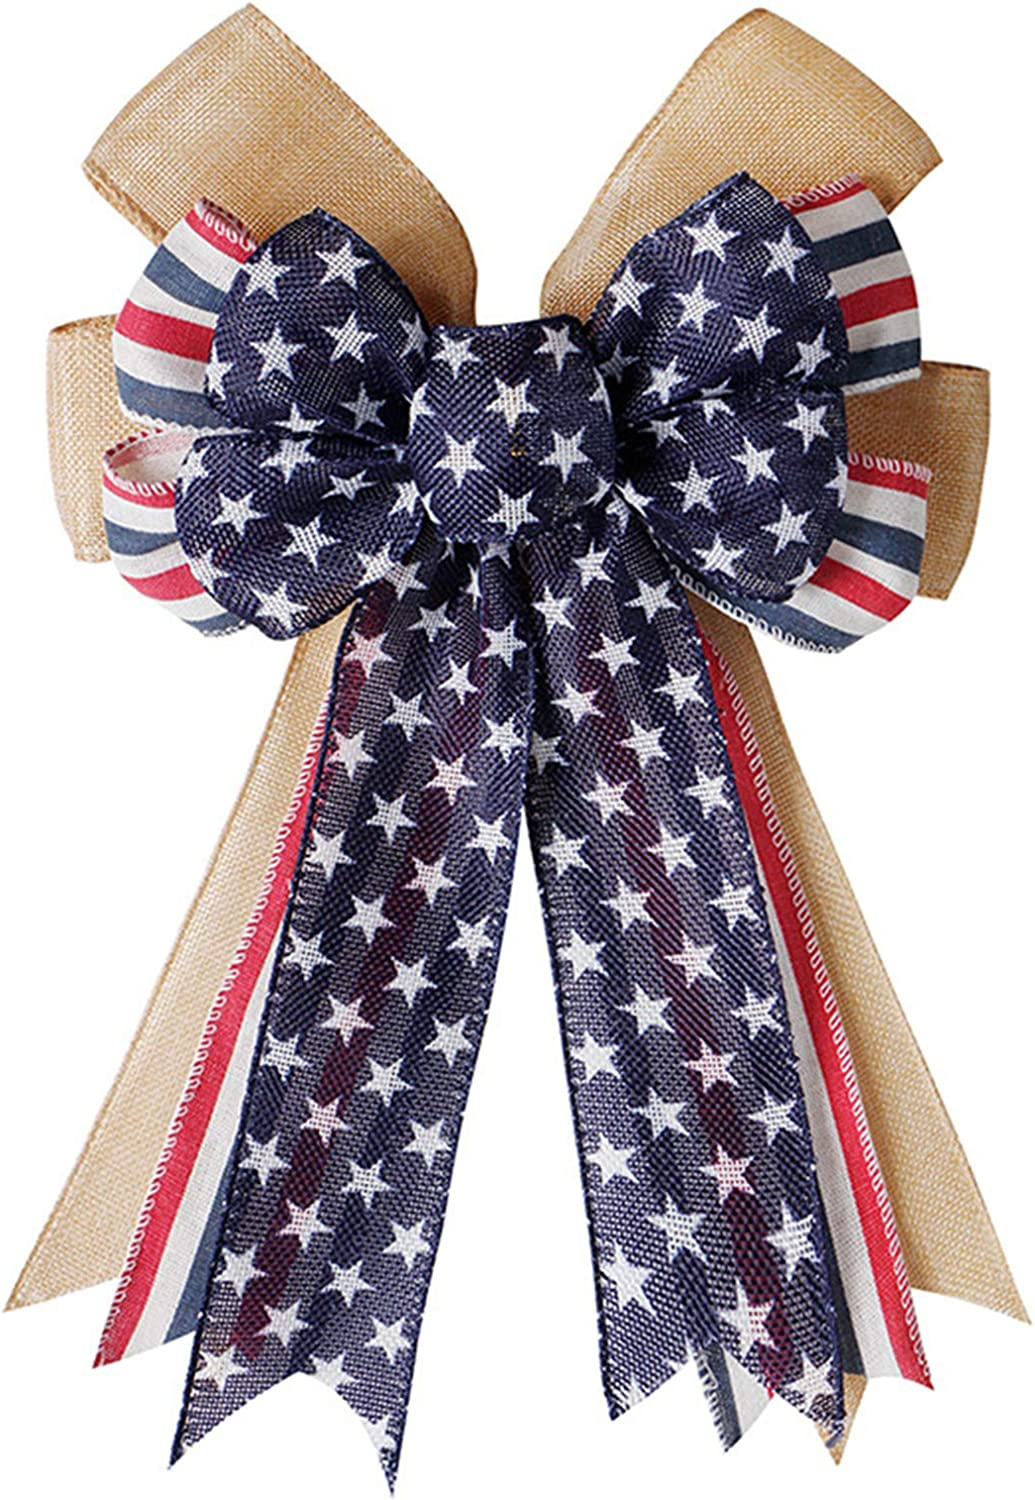 ASSUN Patriotic Bow, Red White Blue Stars Burlap Bow Wreath Bow Holiday Bow for Memorial Day, 4th of July, Independence Day, Veteran's Day, Indoor Outdoor Decorations